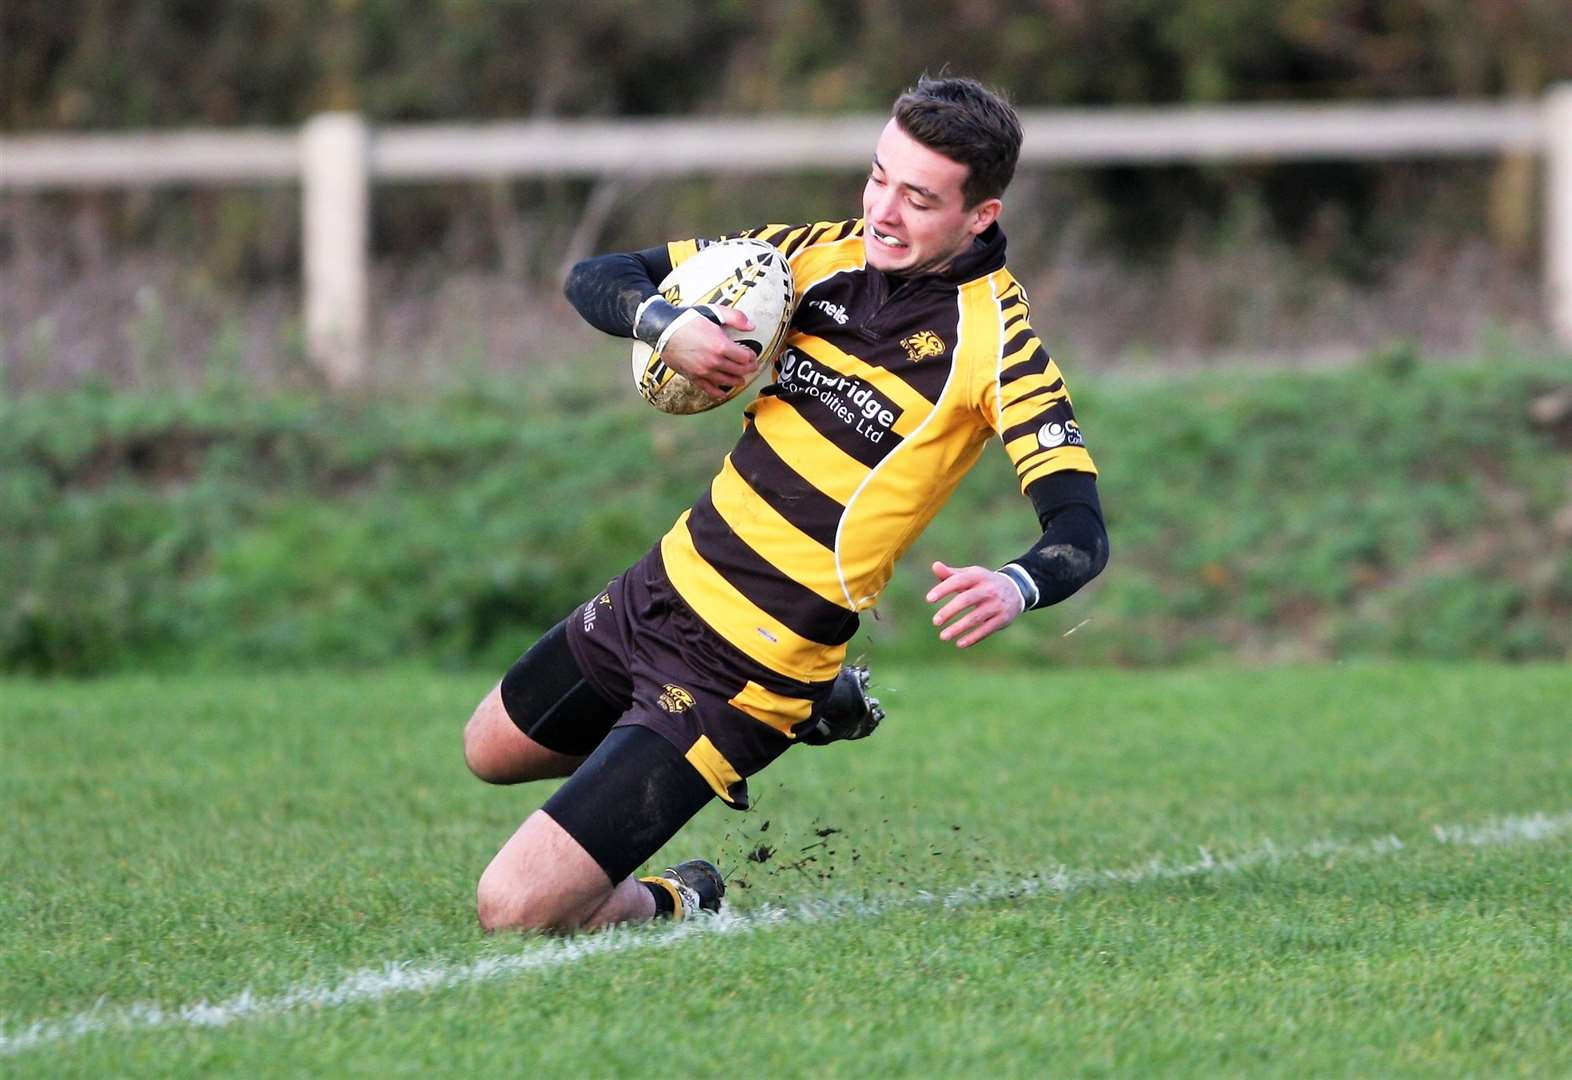 Table-topping West Norfolk defeat Tigers